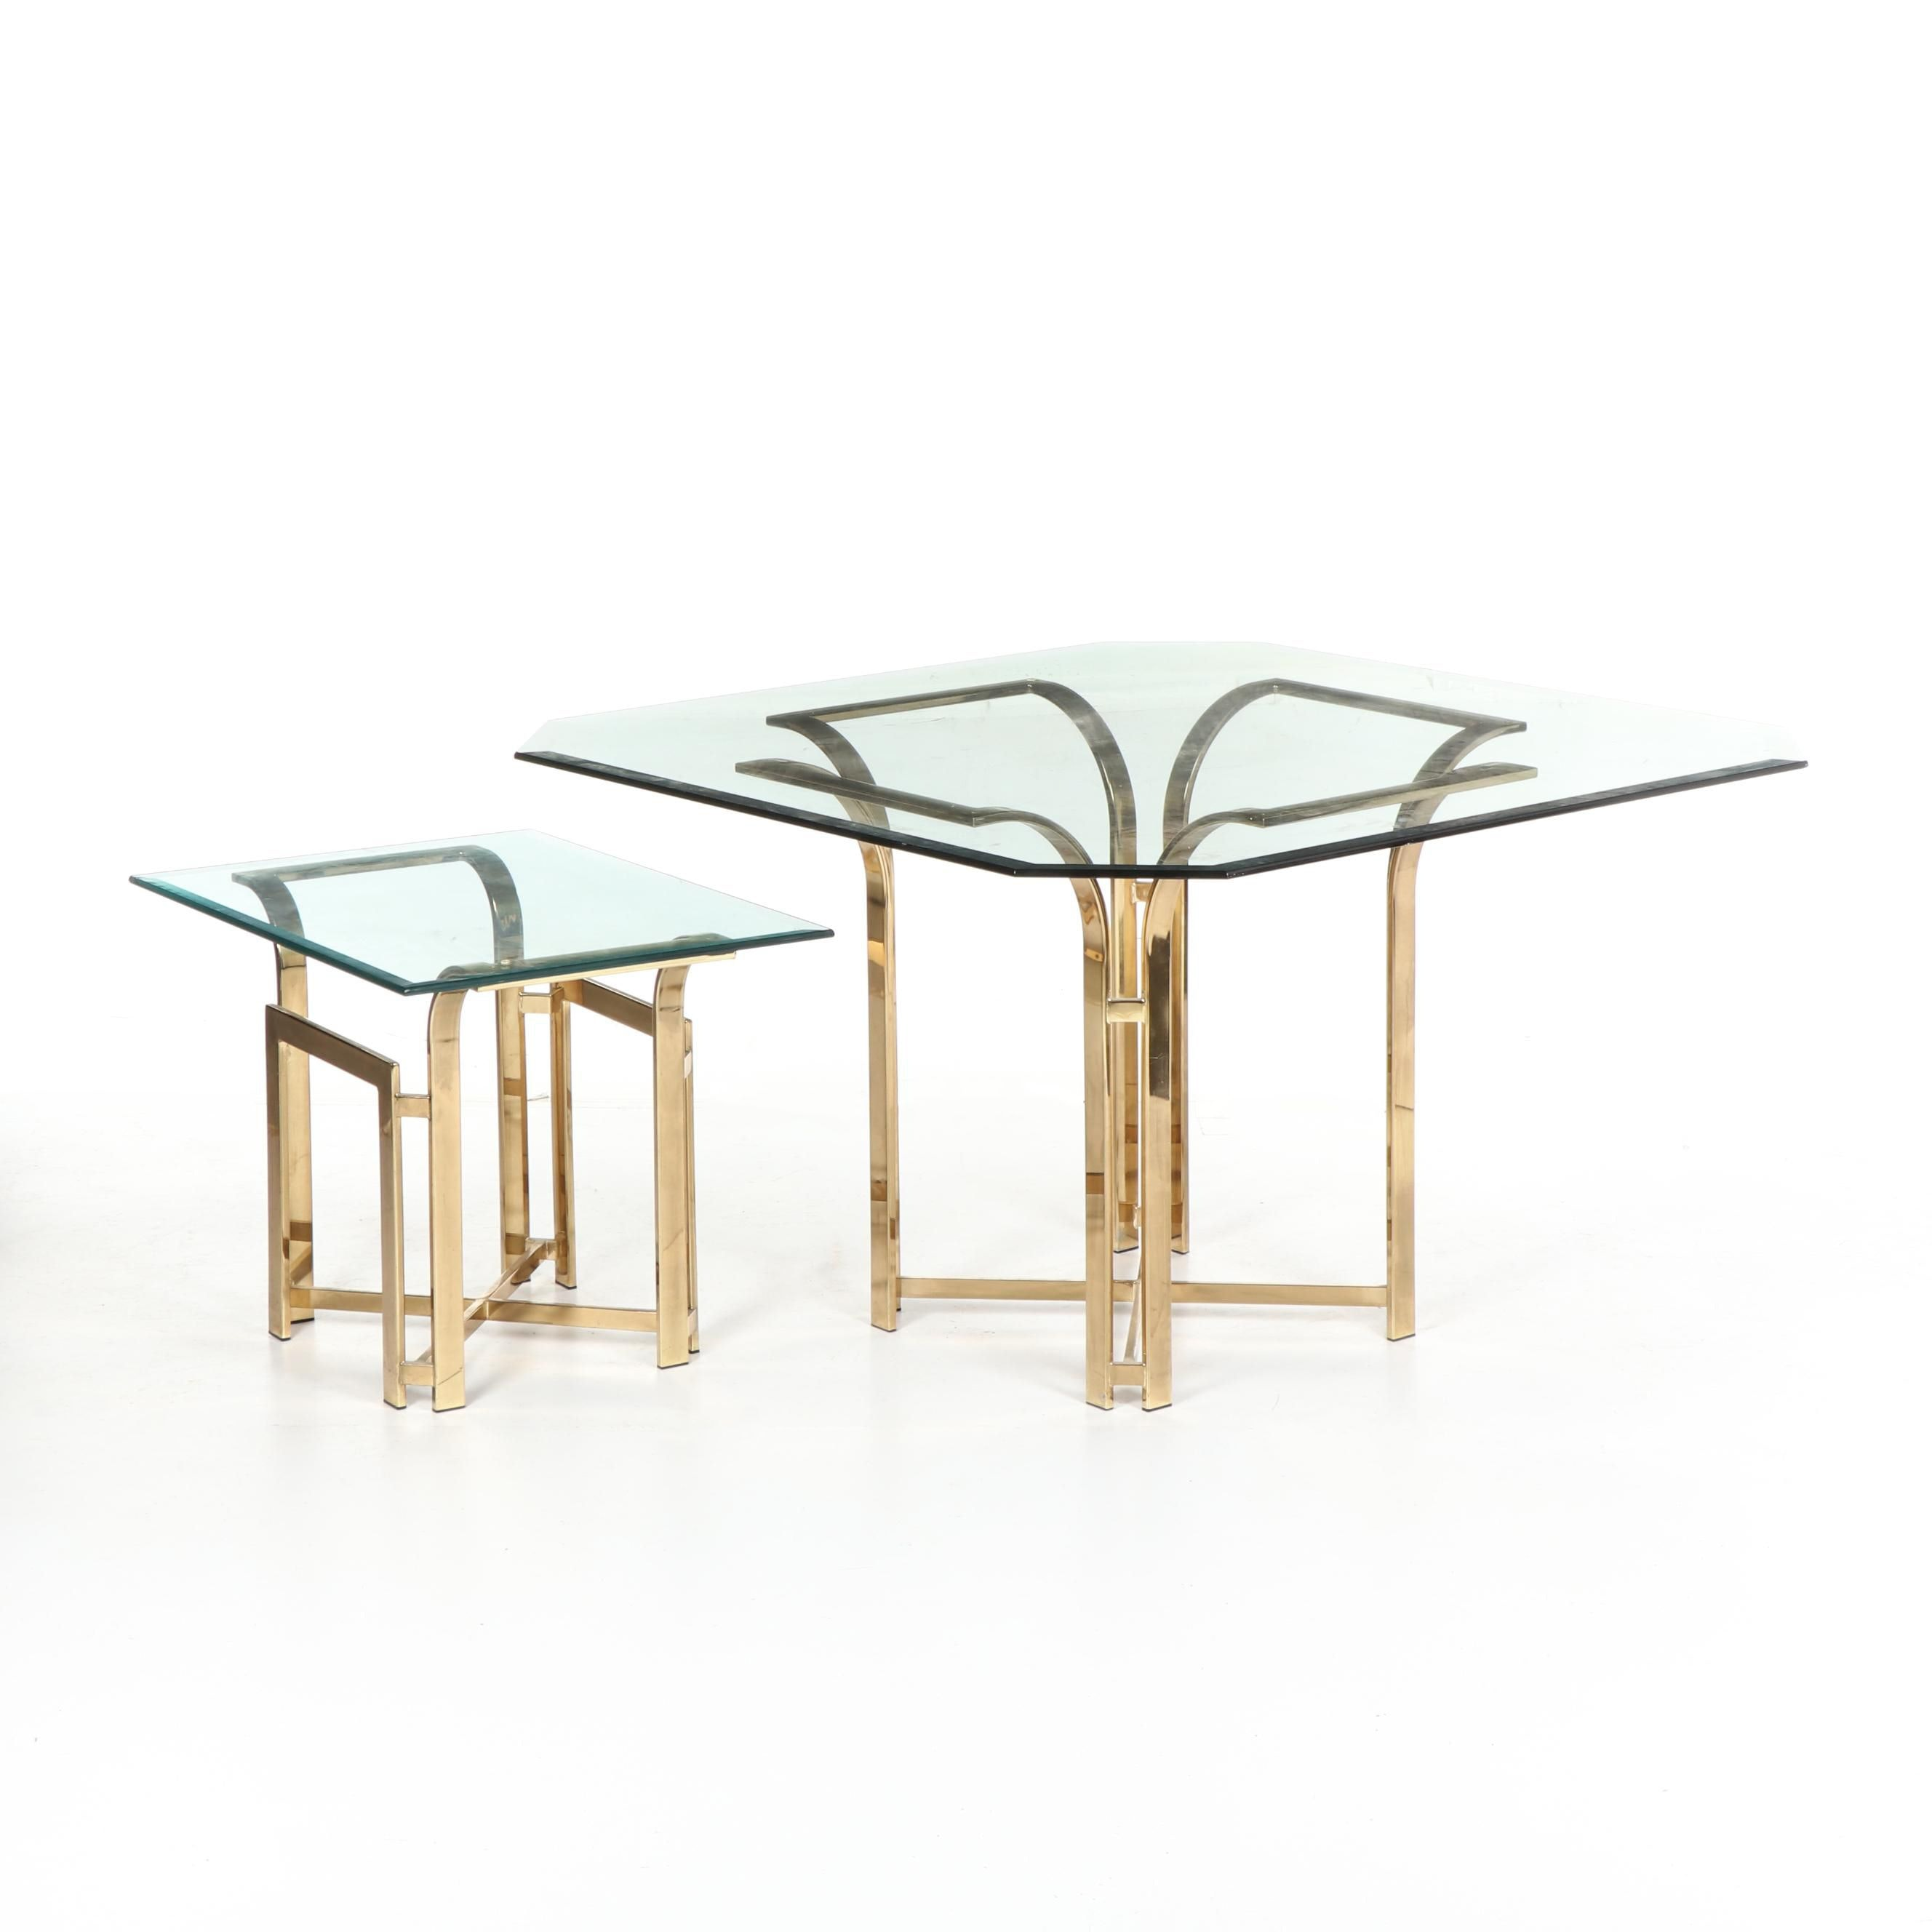 Hollywood Regency Style Glass Top Dining Table and Side Table, Late 20th Century